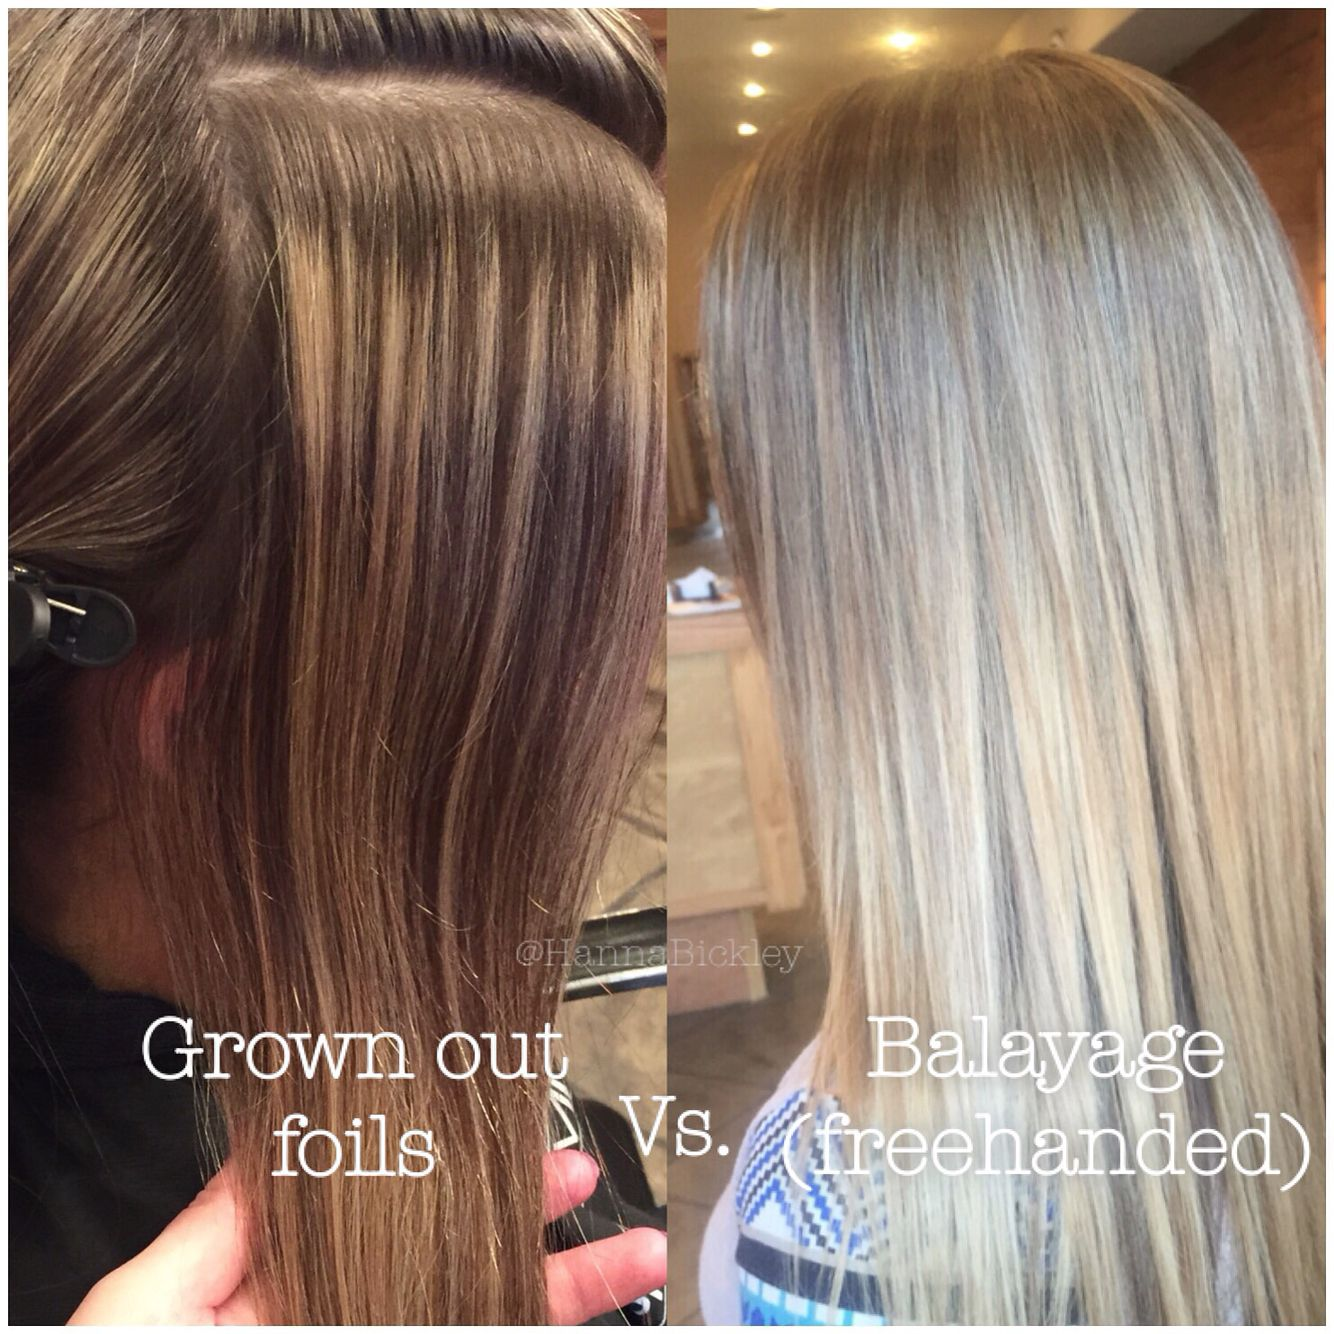 Traditional Grown Out Foils Foiled Highlights Vs Balayage Made This Subtle Blonde Sombre Hannabickley Highlights Vs Balayage Highlight Vs Balayage Balayage